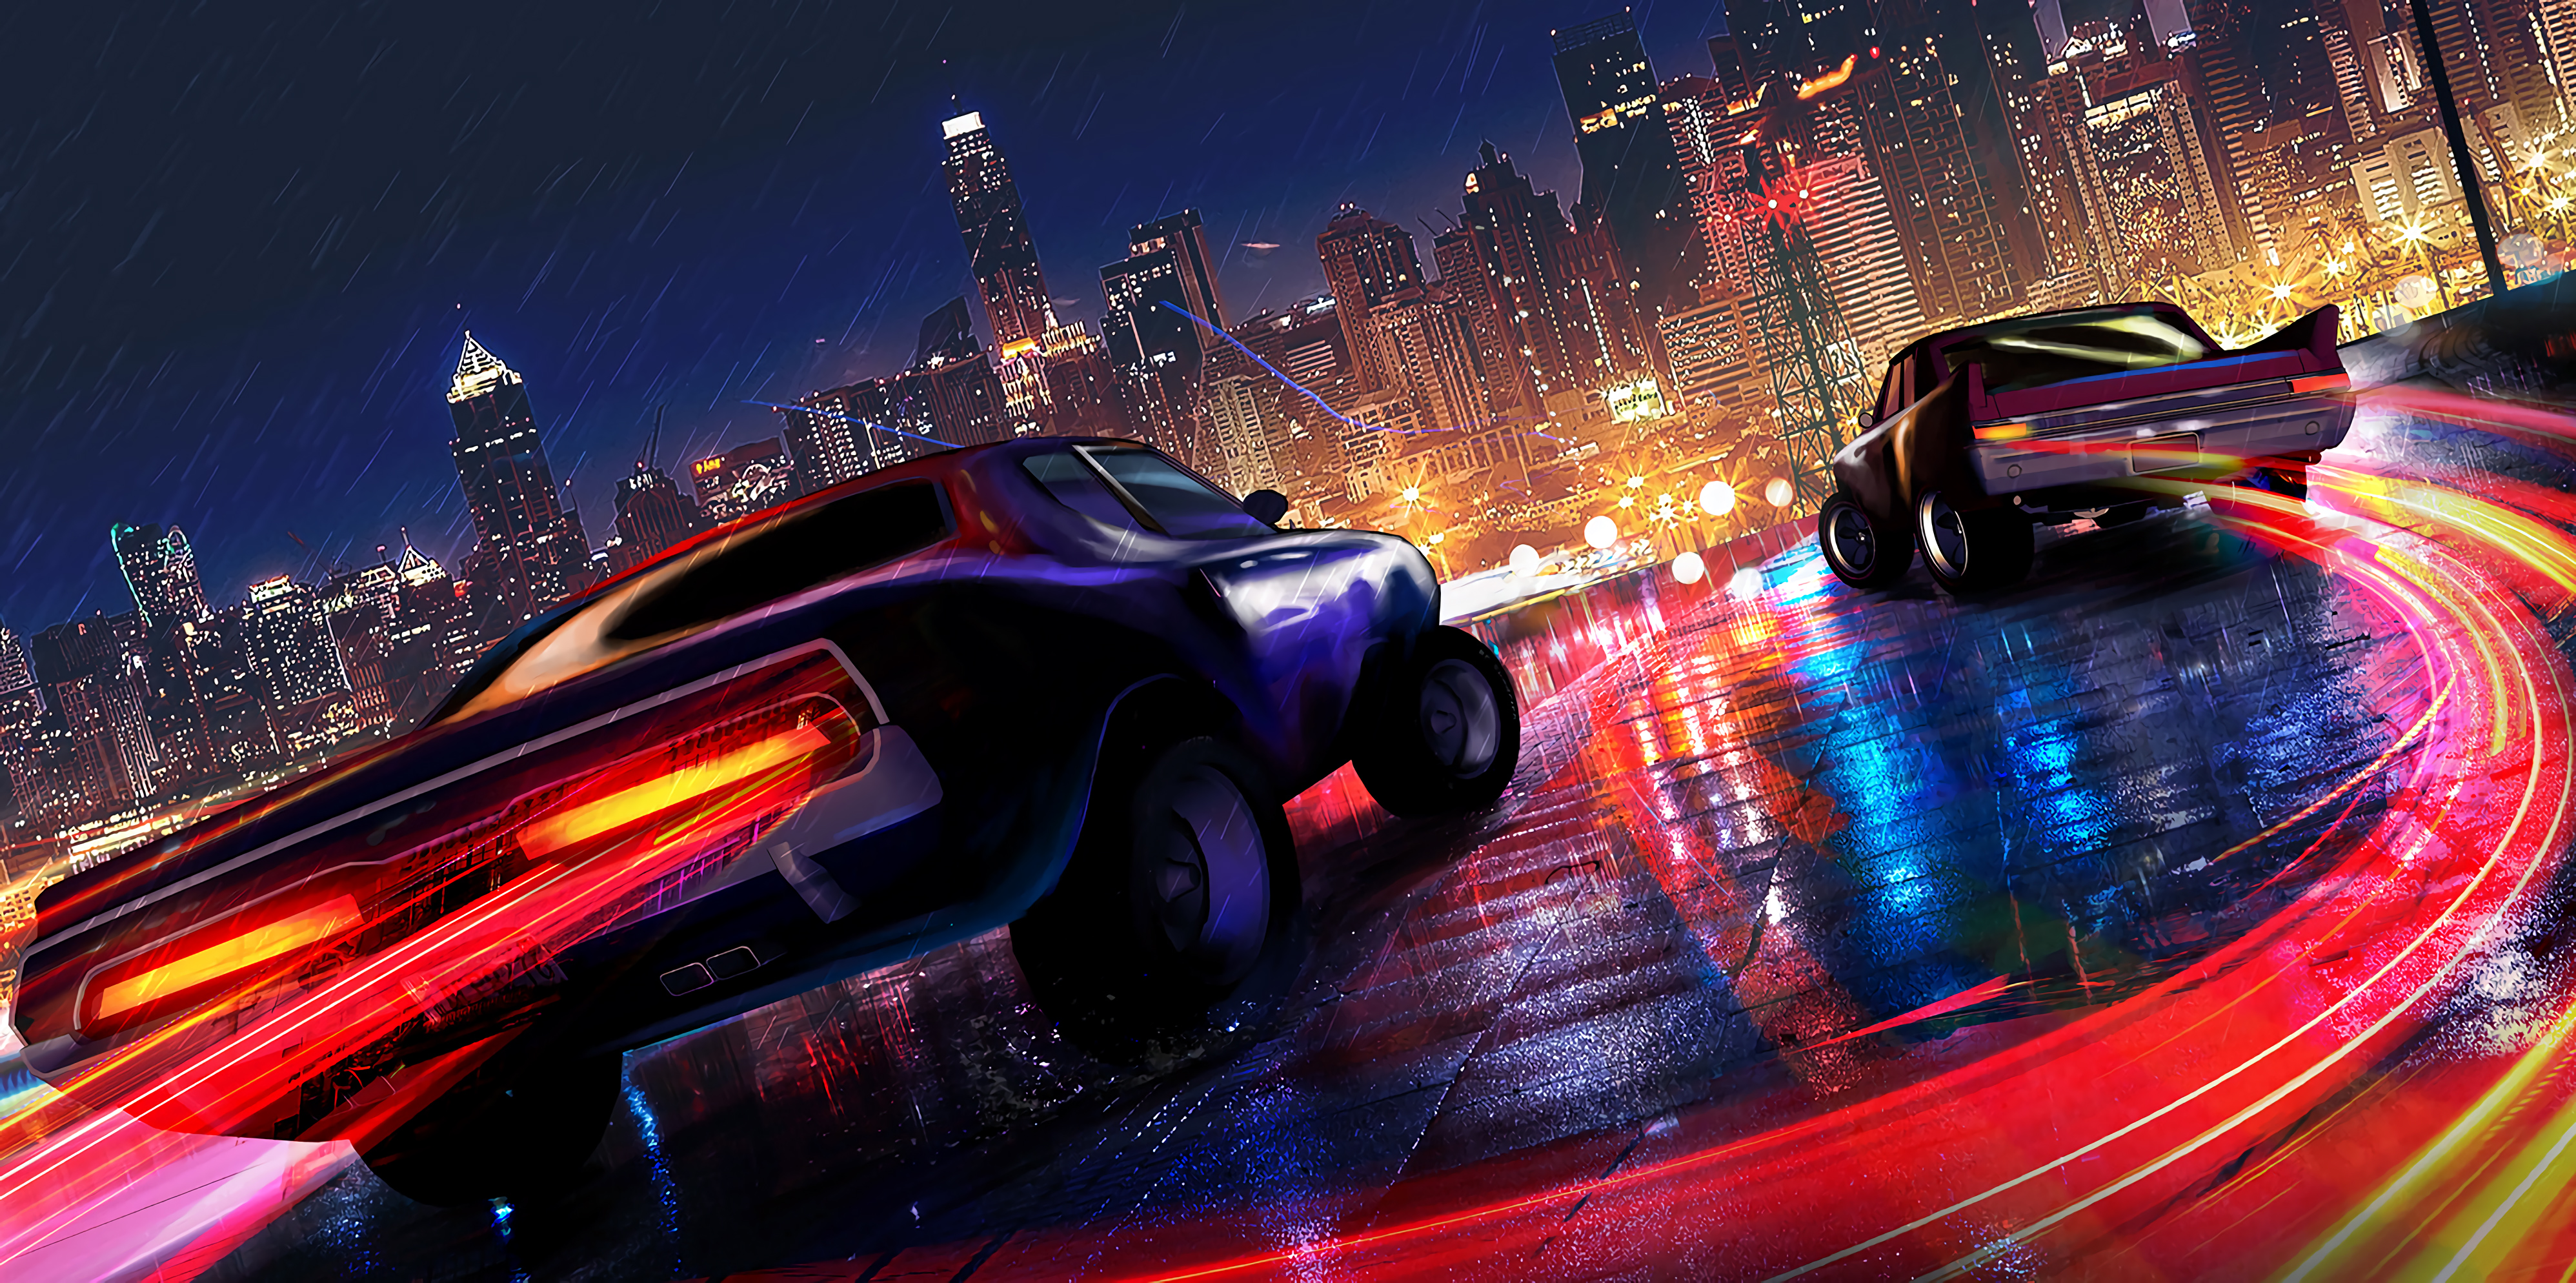 Car Drifting Neon Lights 4k Hd Artist 4k Wallpapers Images Backgrounds Photos And Pictures